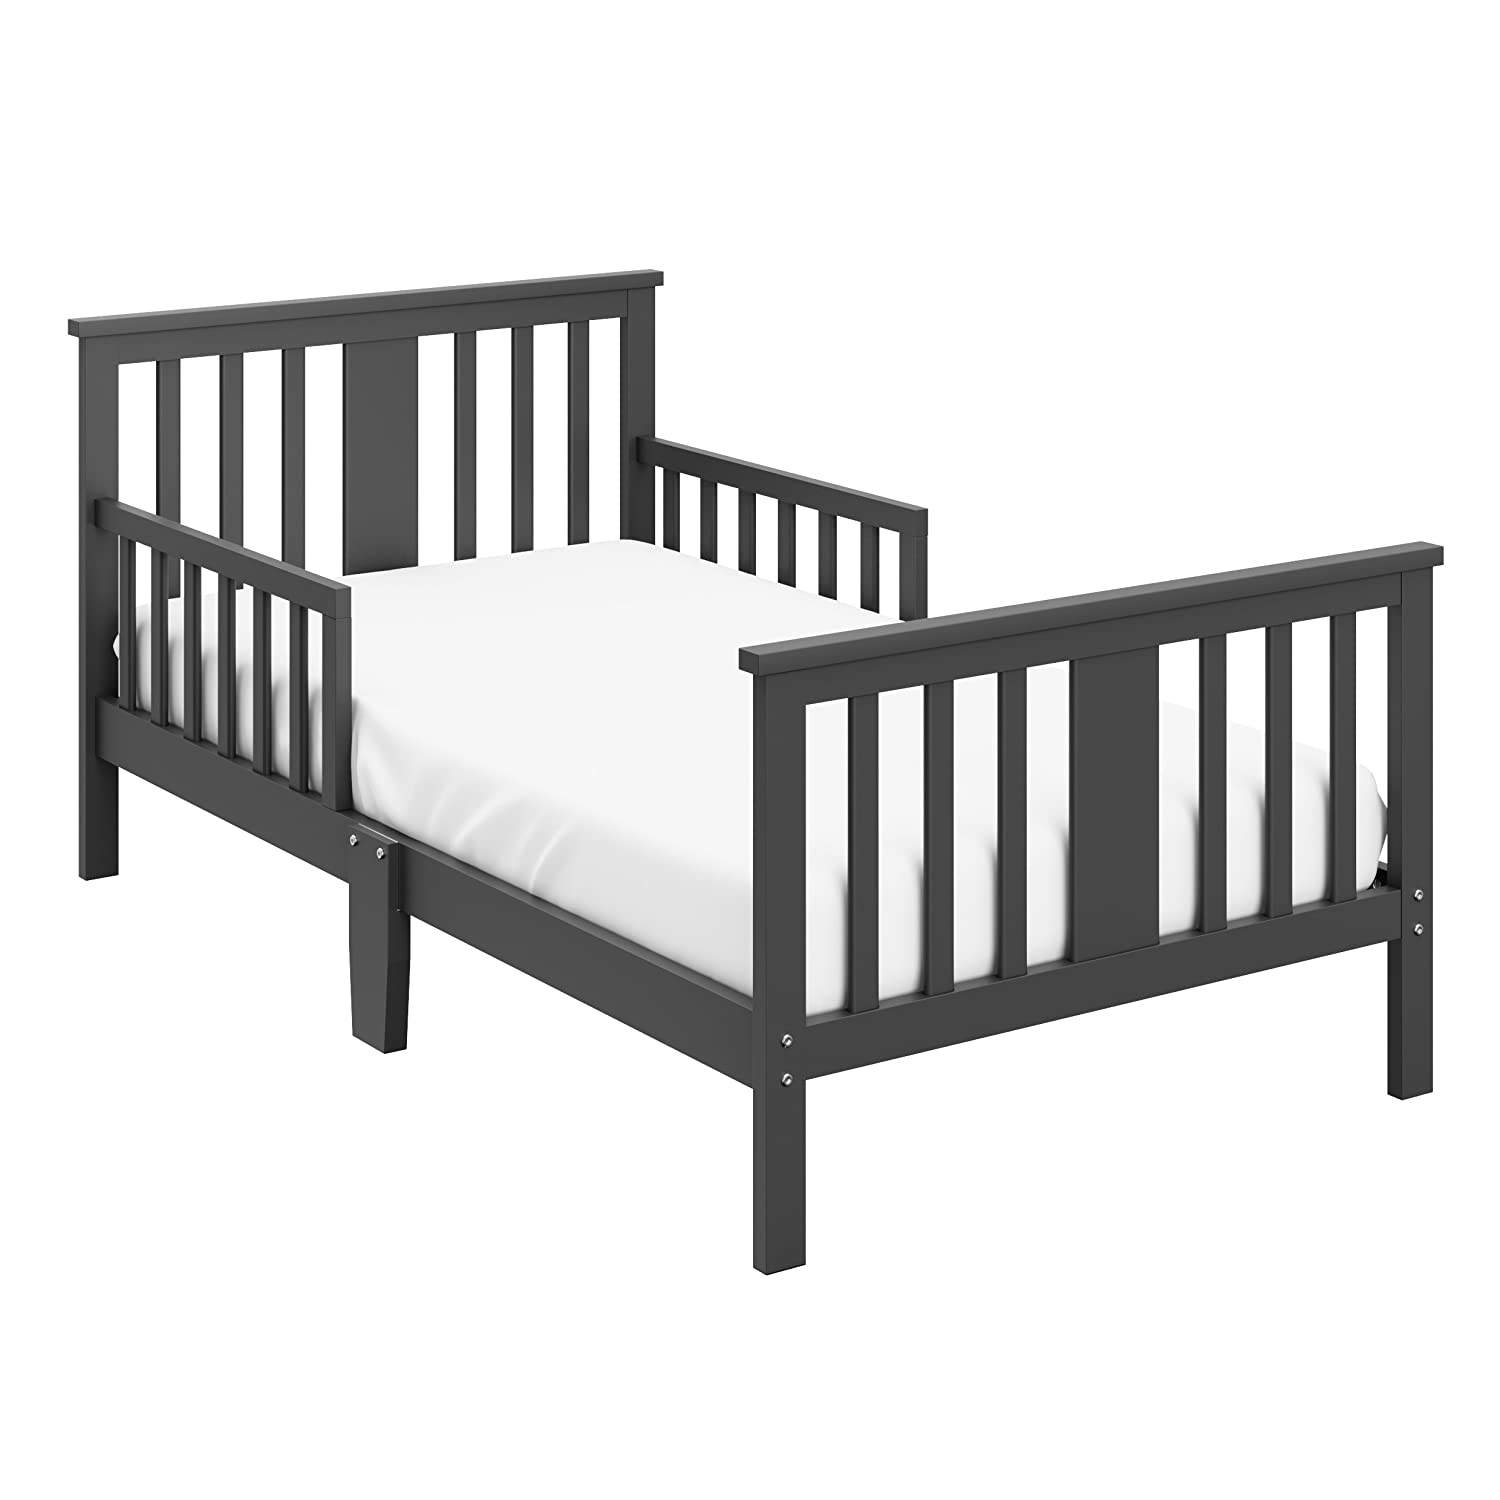 Storkcraft Mission Ridge Toddler Bed Gray Fits Standard-Size Toddler Mattress, Guardrails on Both Sides for Protection, Meets or Exceeds all Federal Safety Standards, Pine & Composite Construction 05250-10G